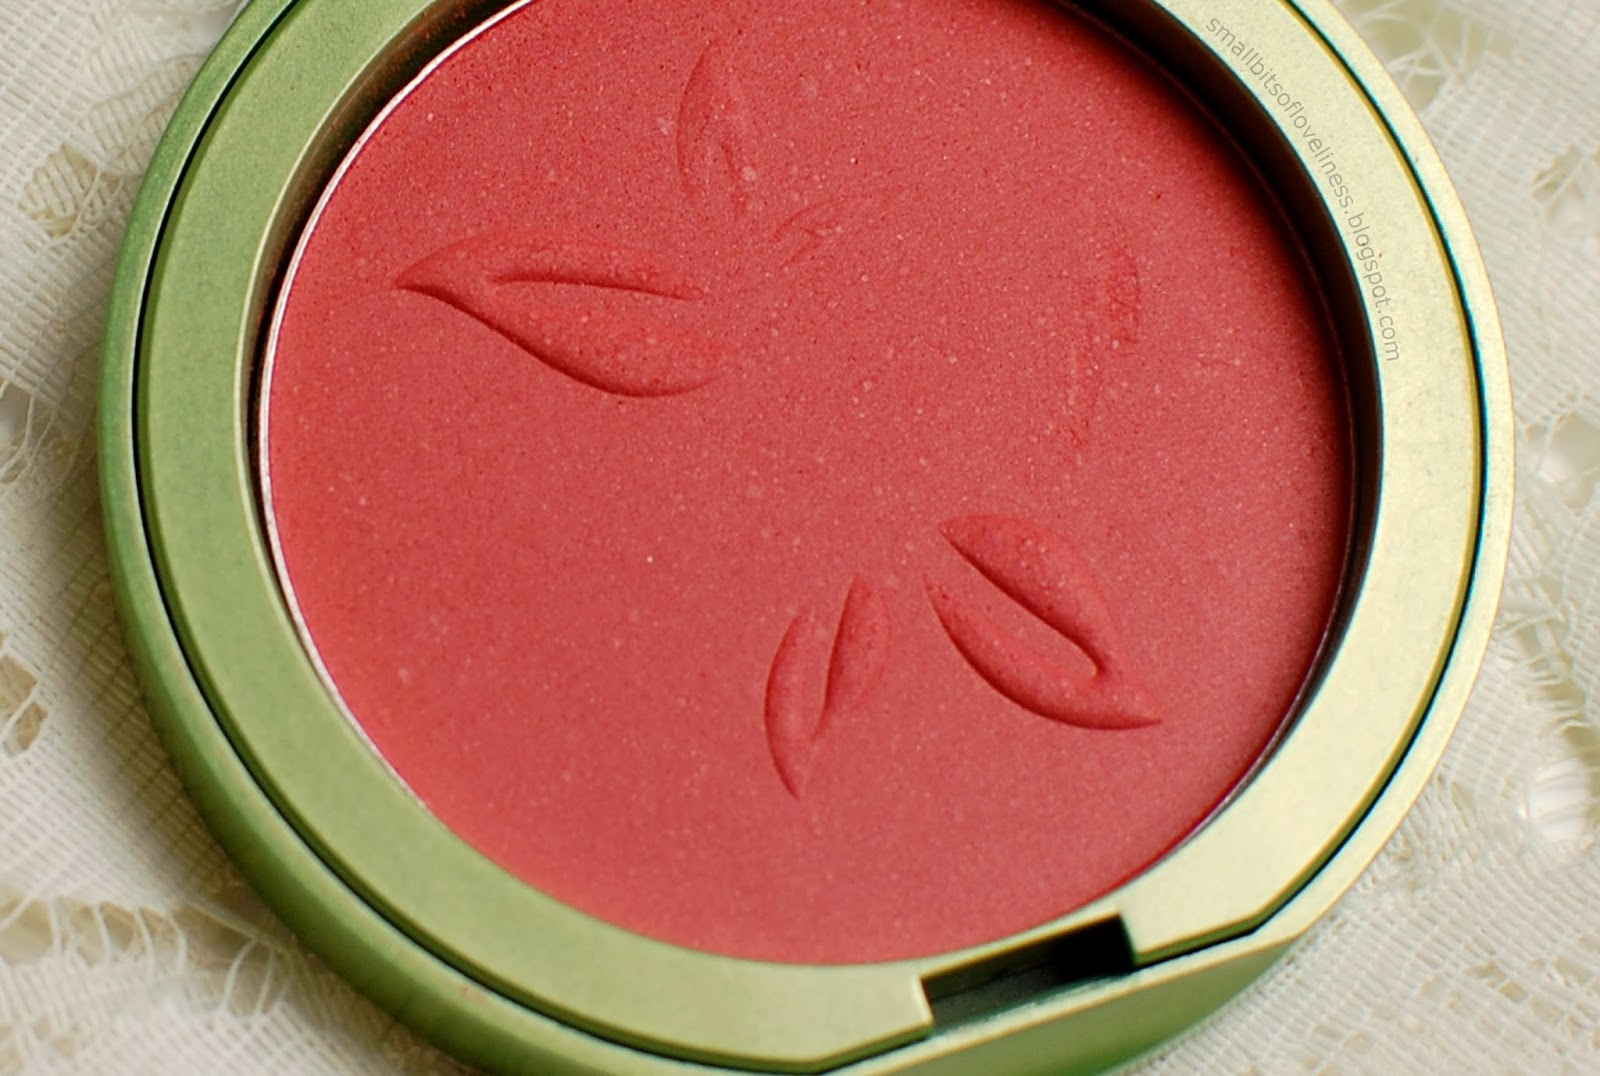 Alverde Blusher Flamingo